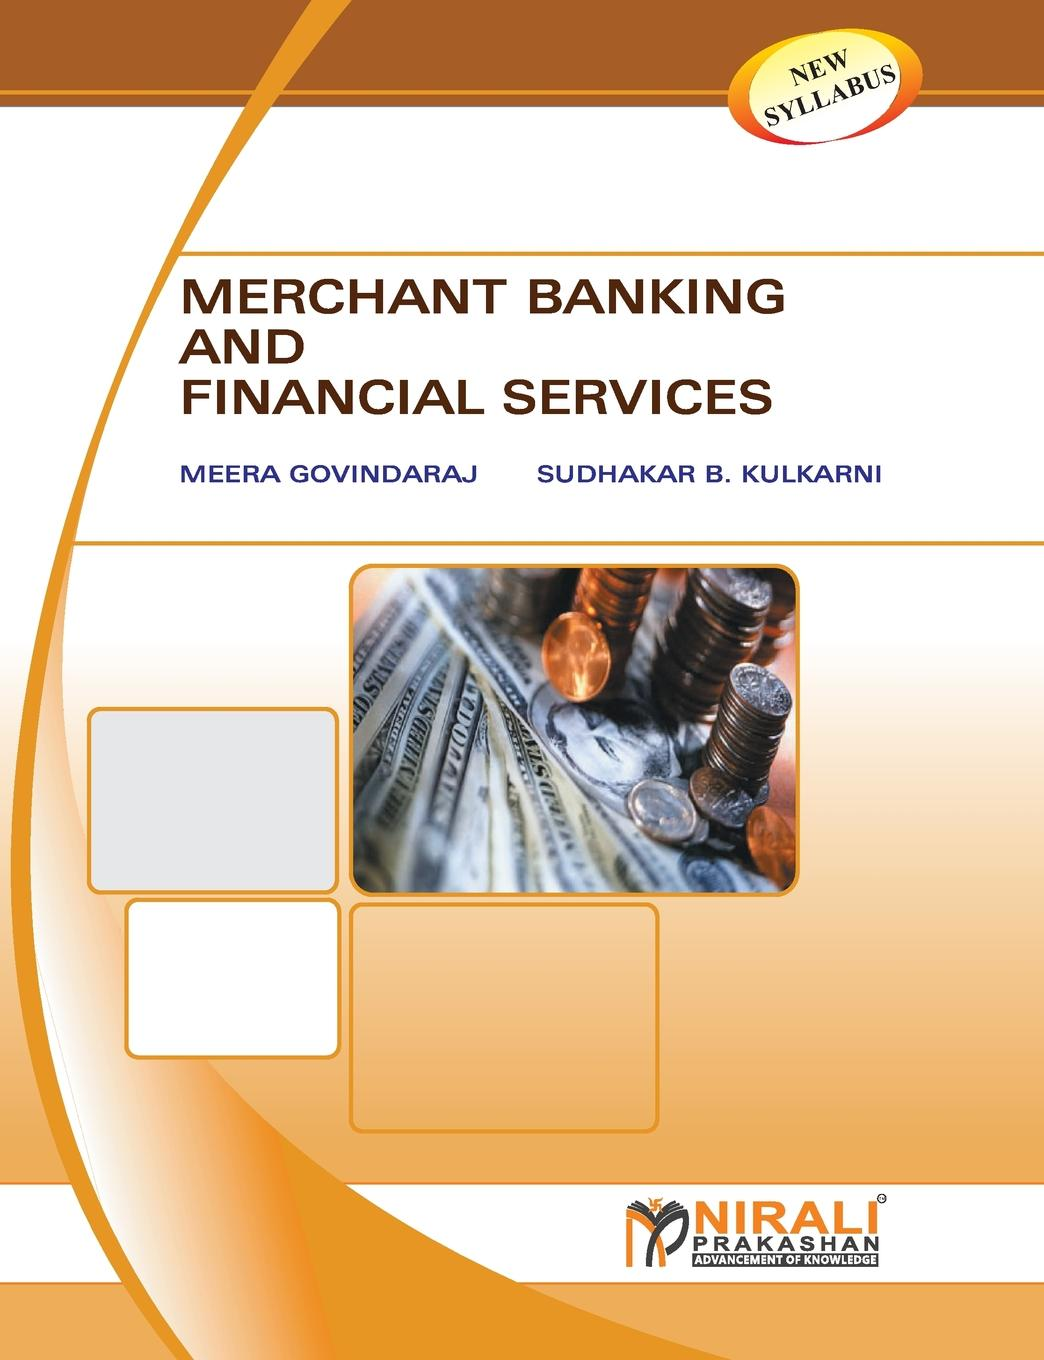 цена на S B KULKARNI, M GOVINDARAJ MERCHANT BANKING AND FINANCIAL SERVICES